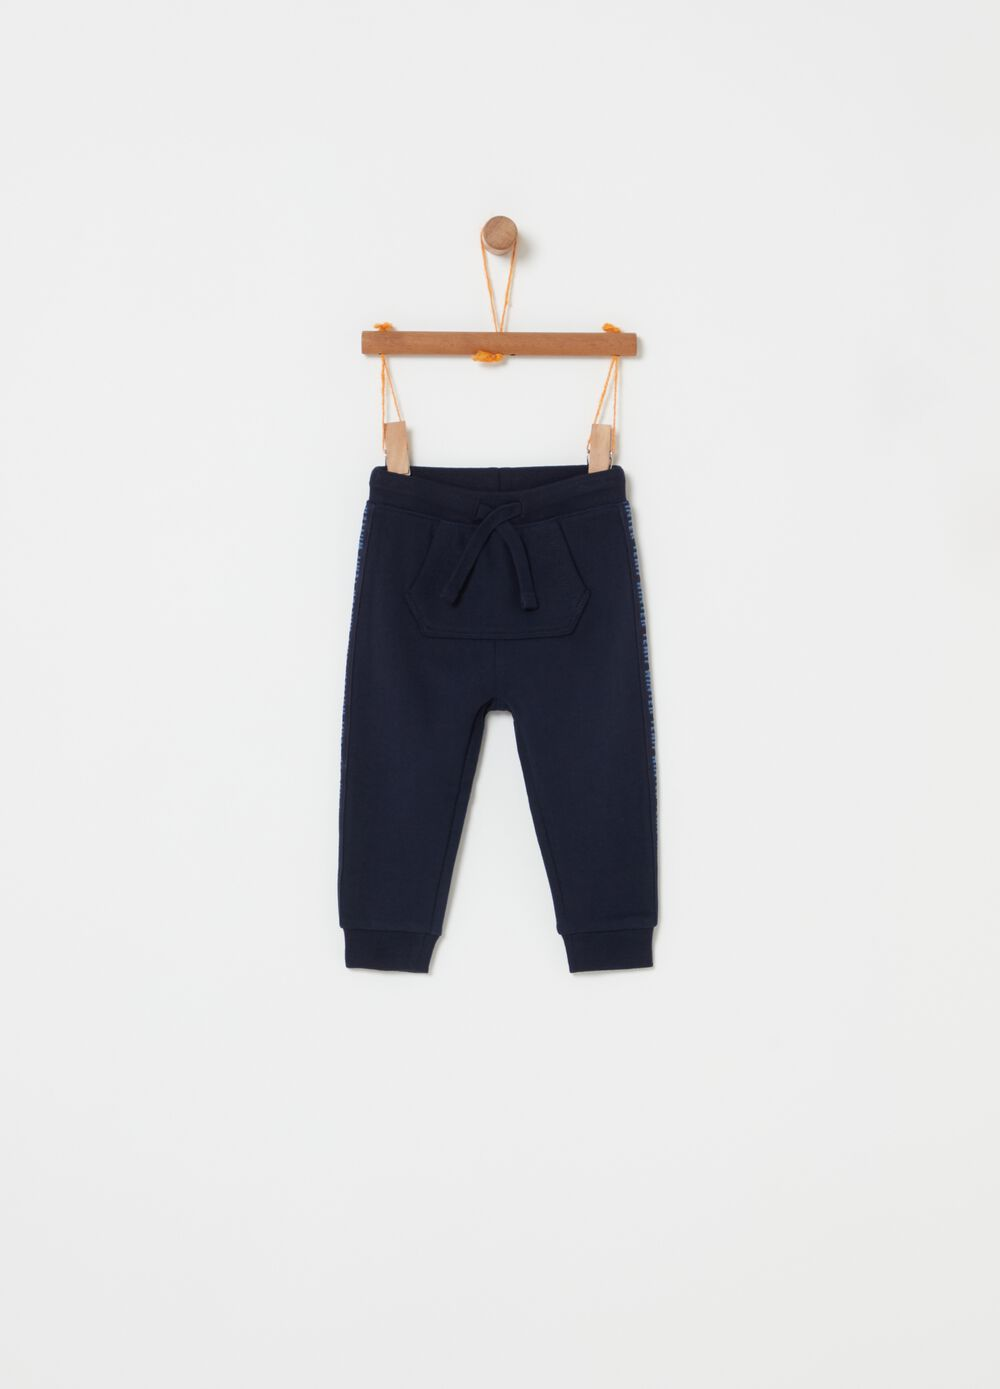 Fleece trousers with pouch pocket